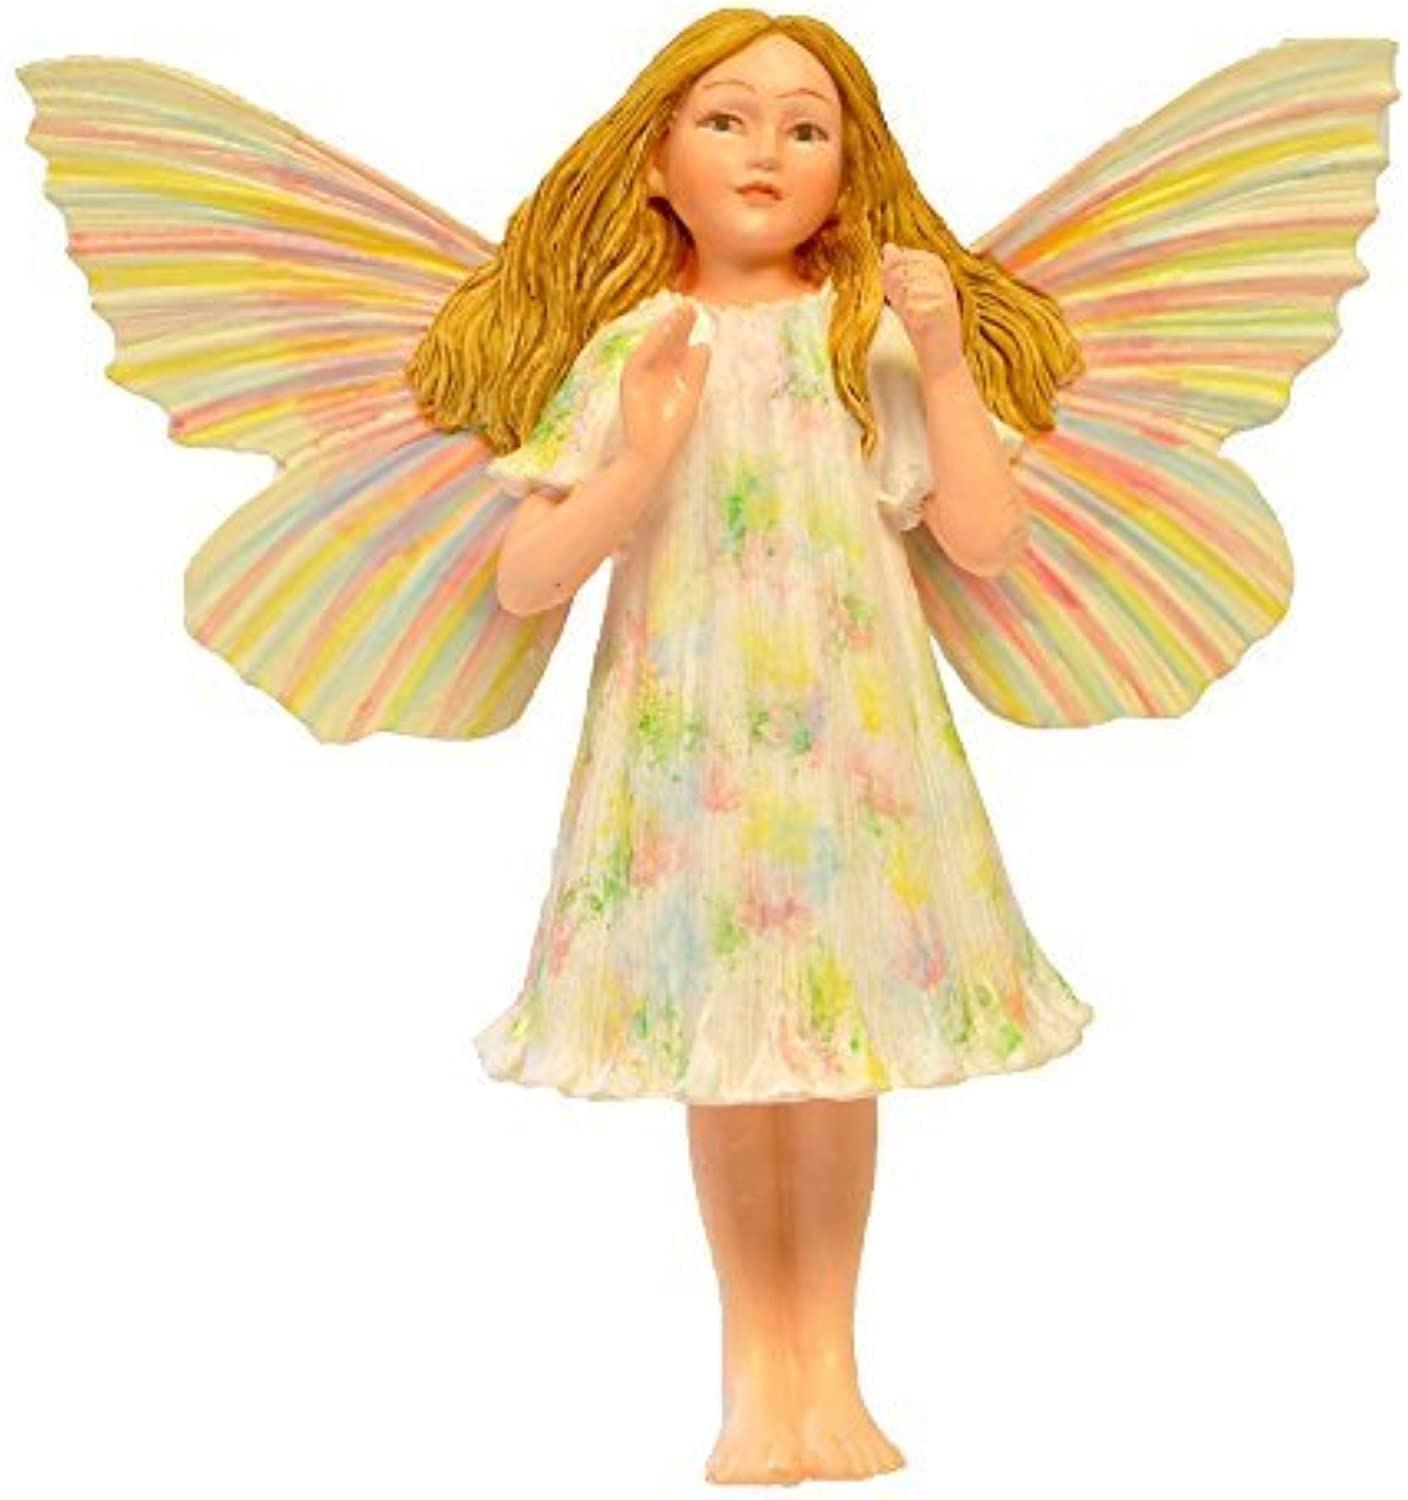 The Yarrow Flower Fairy by Add an Accent